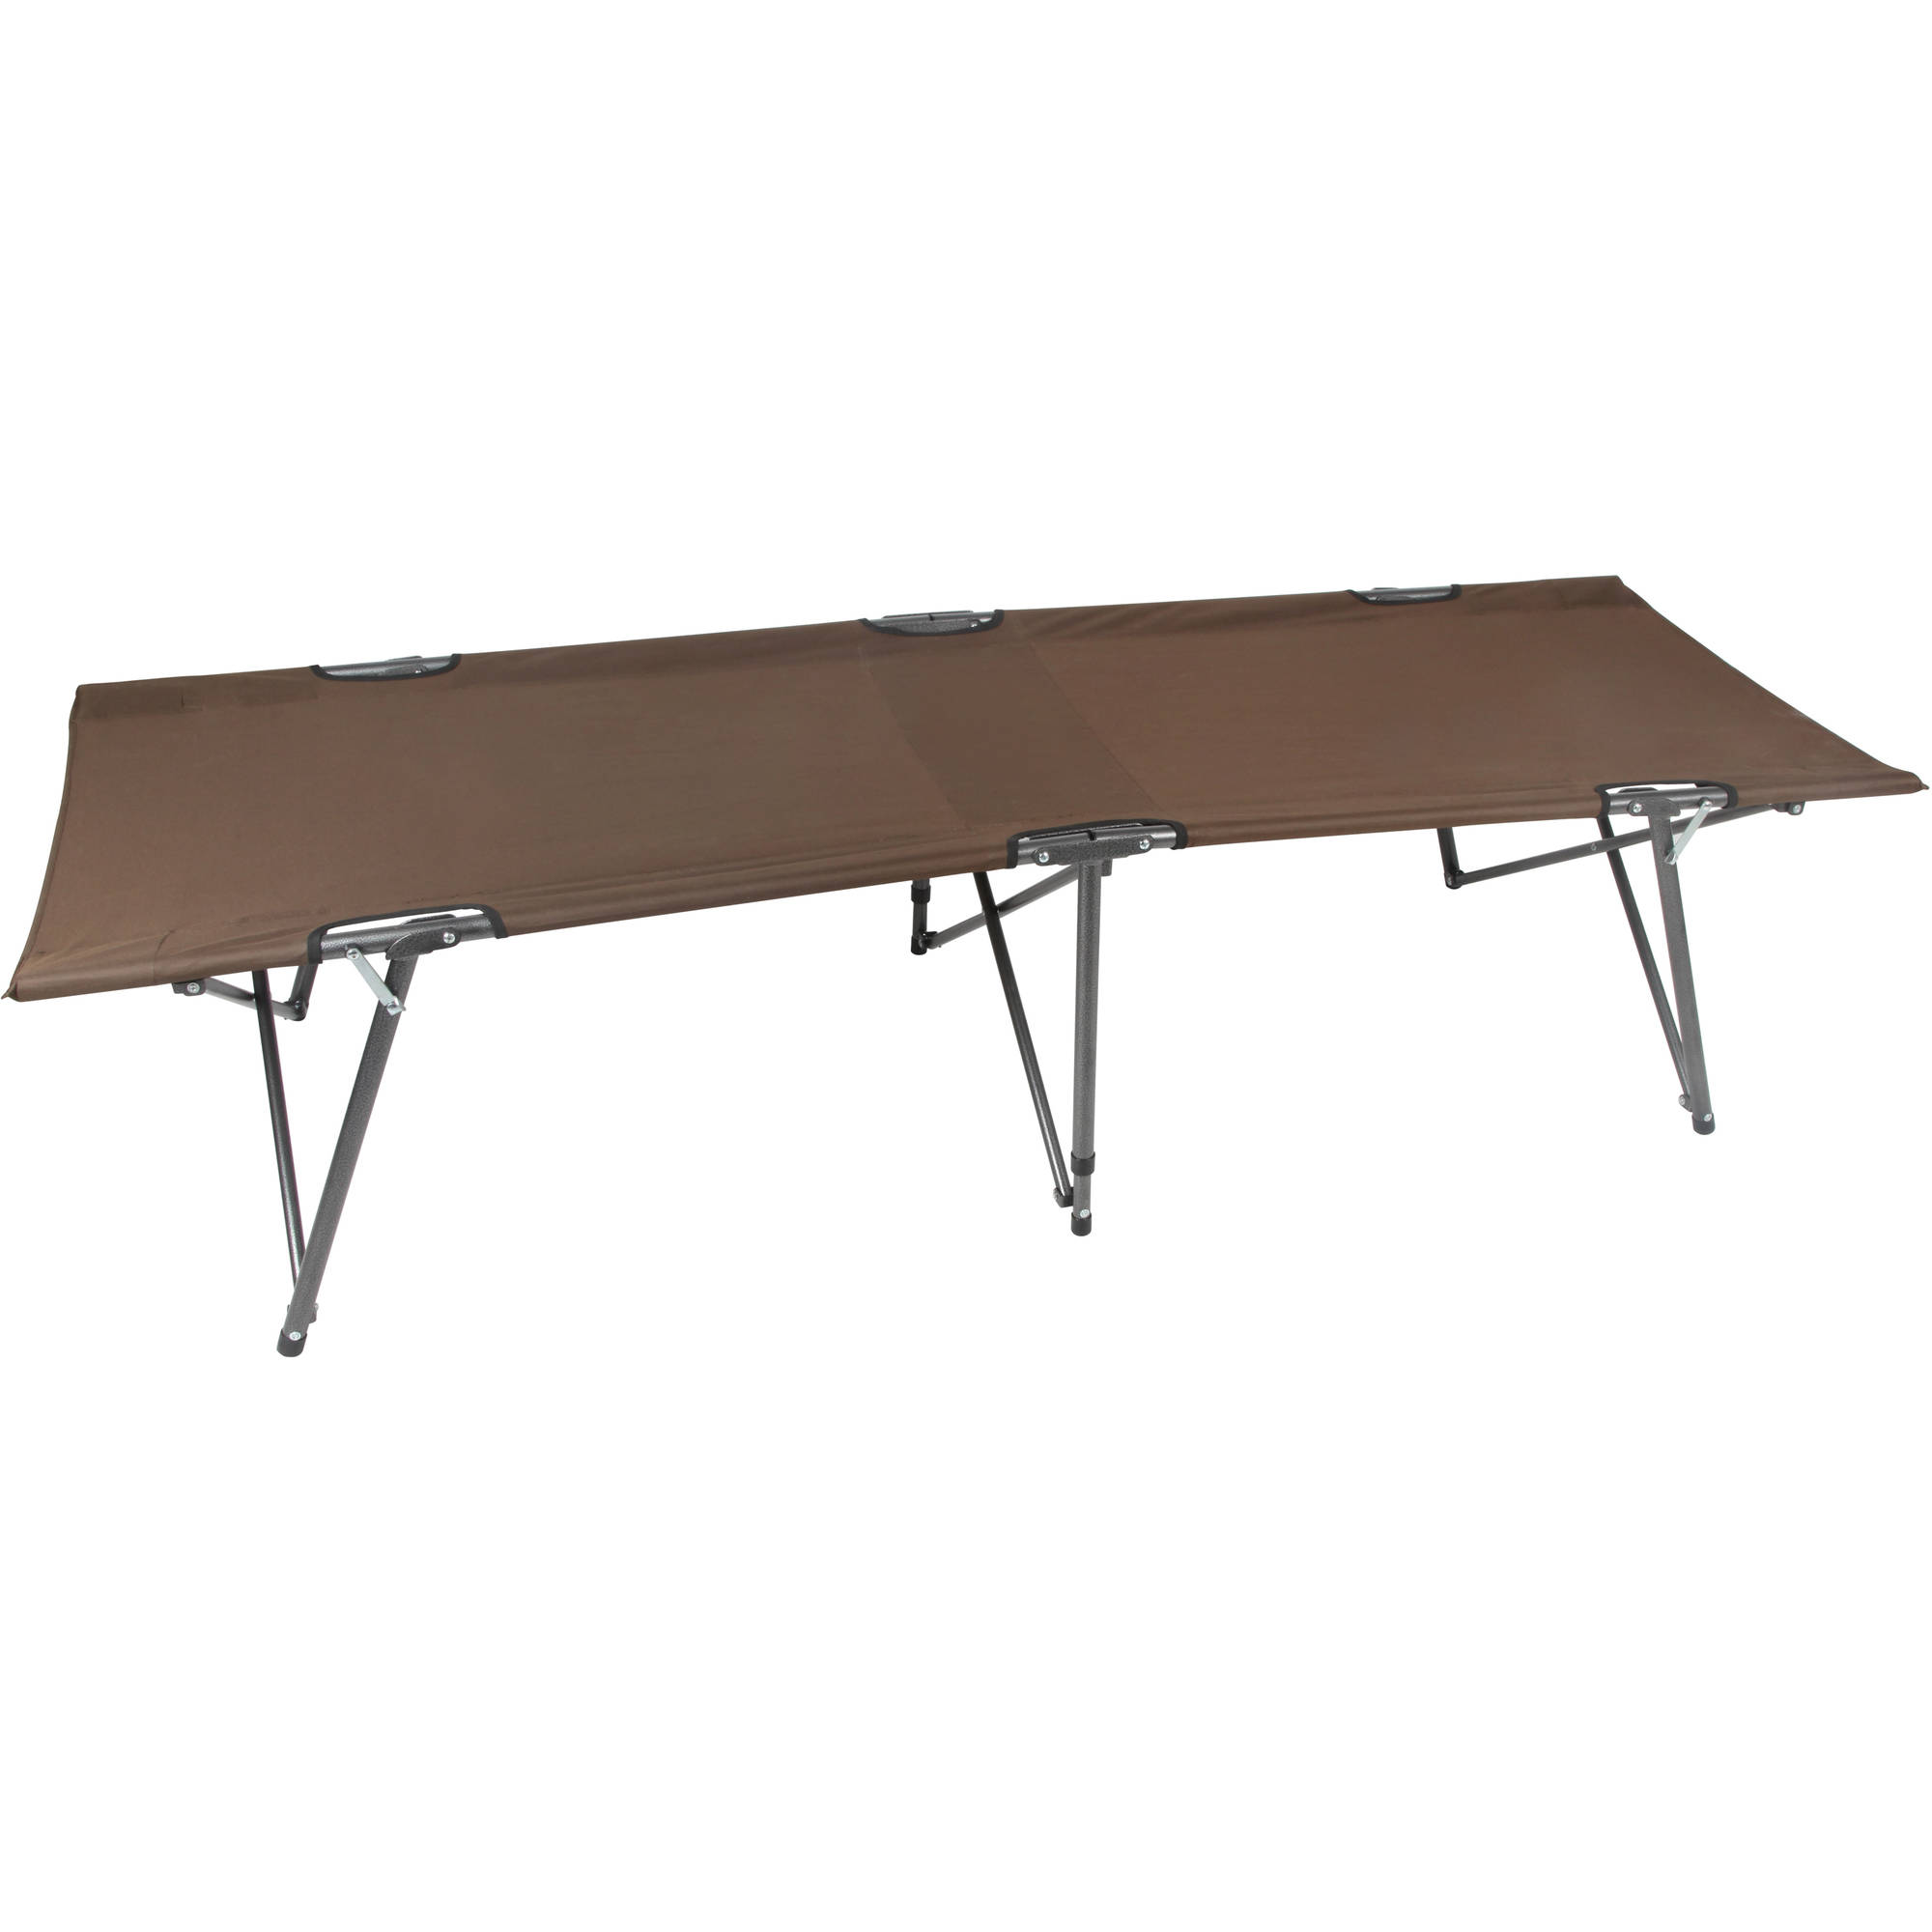 Ozark Trail Basic Comfort Folding Cot, Brown by WESTFIELD OUTDOOR INC